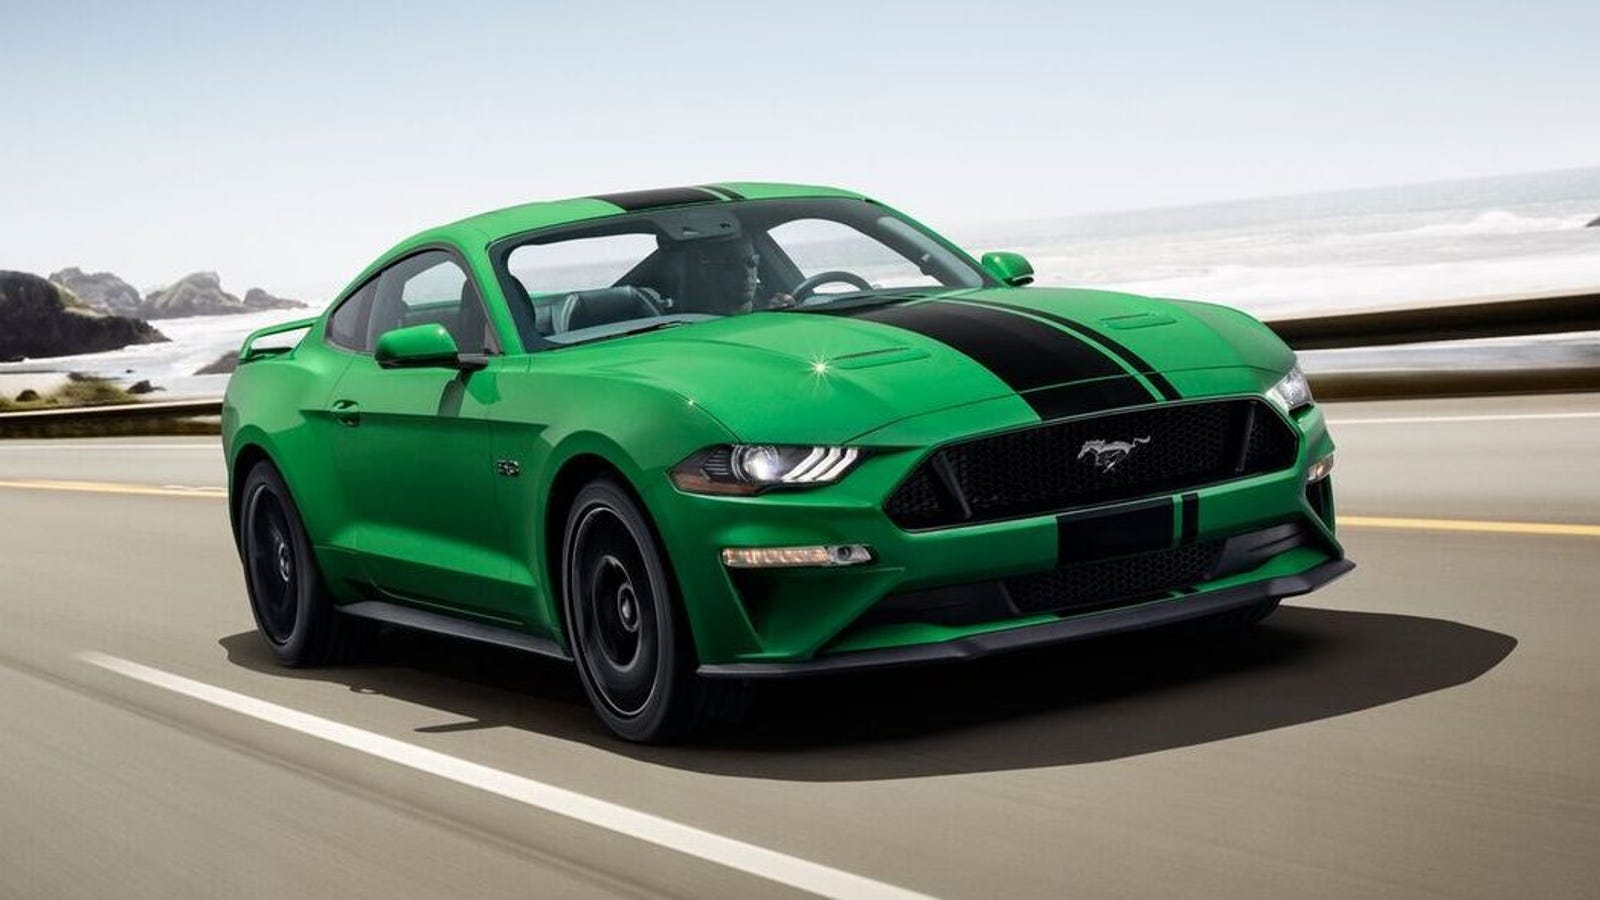 The Ford Mustang Cements 2018 As The Year Of The Green